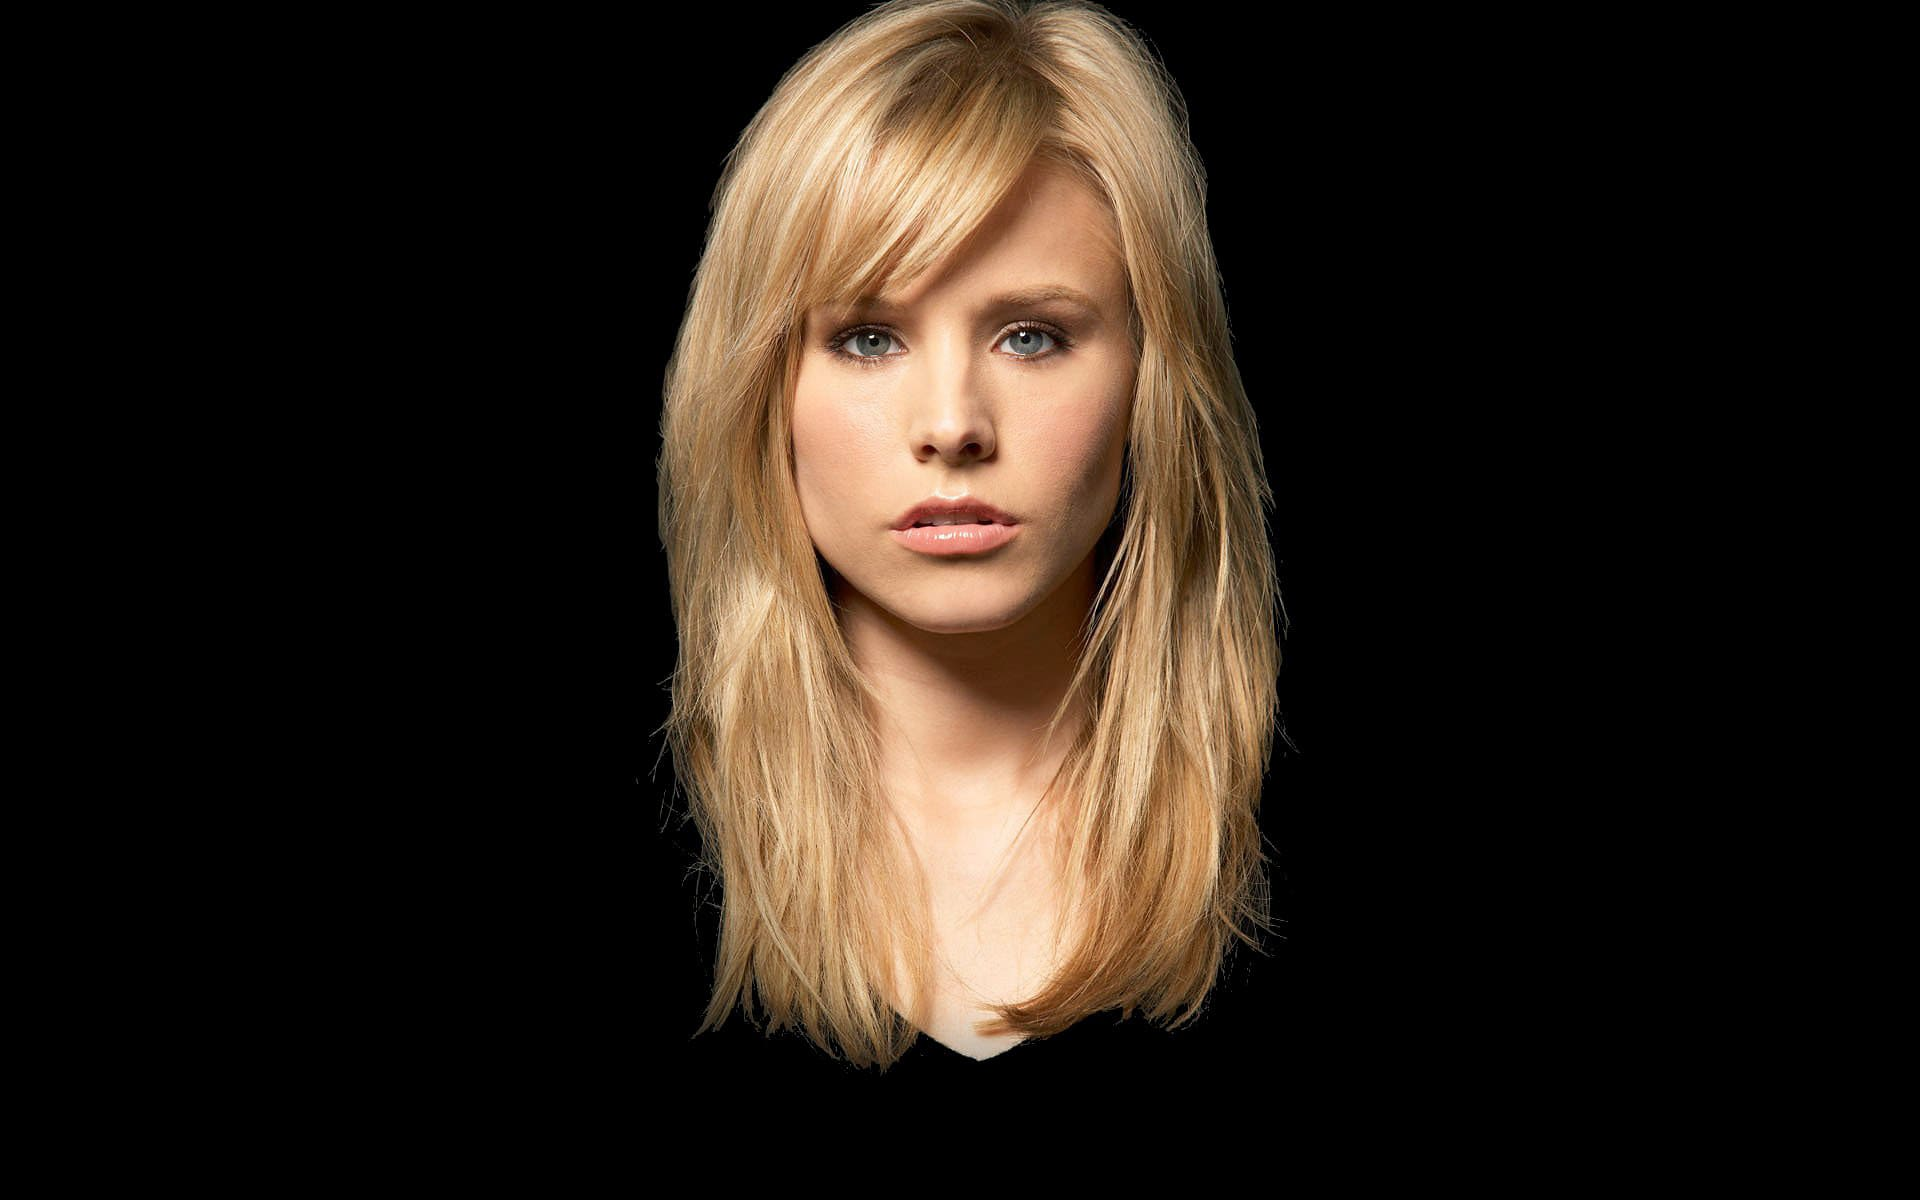 Kristen Bell Backgrounds